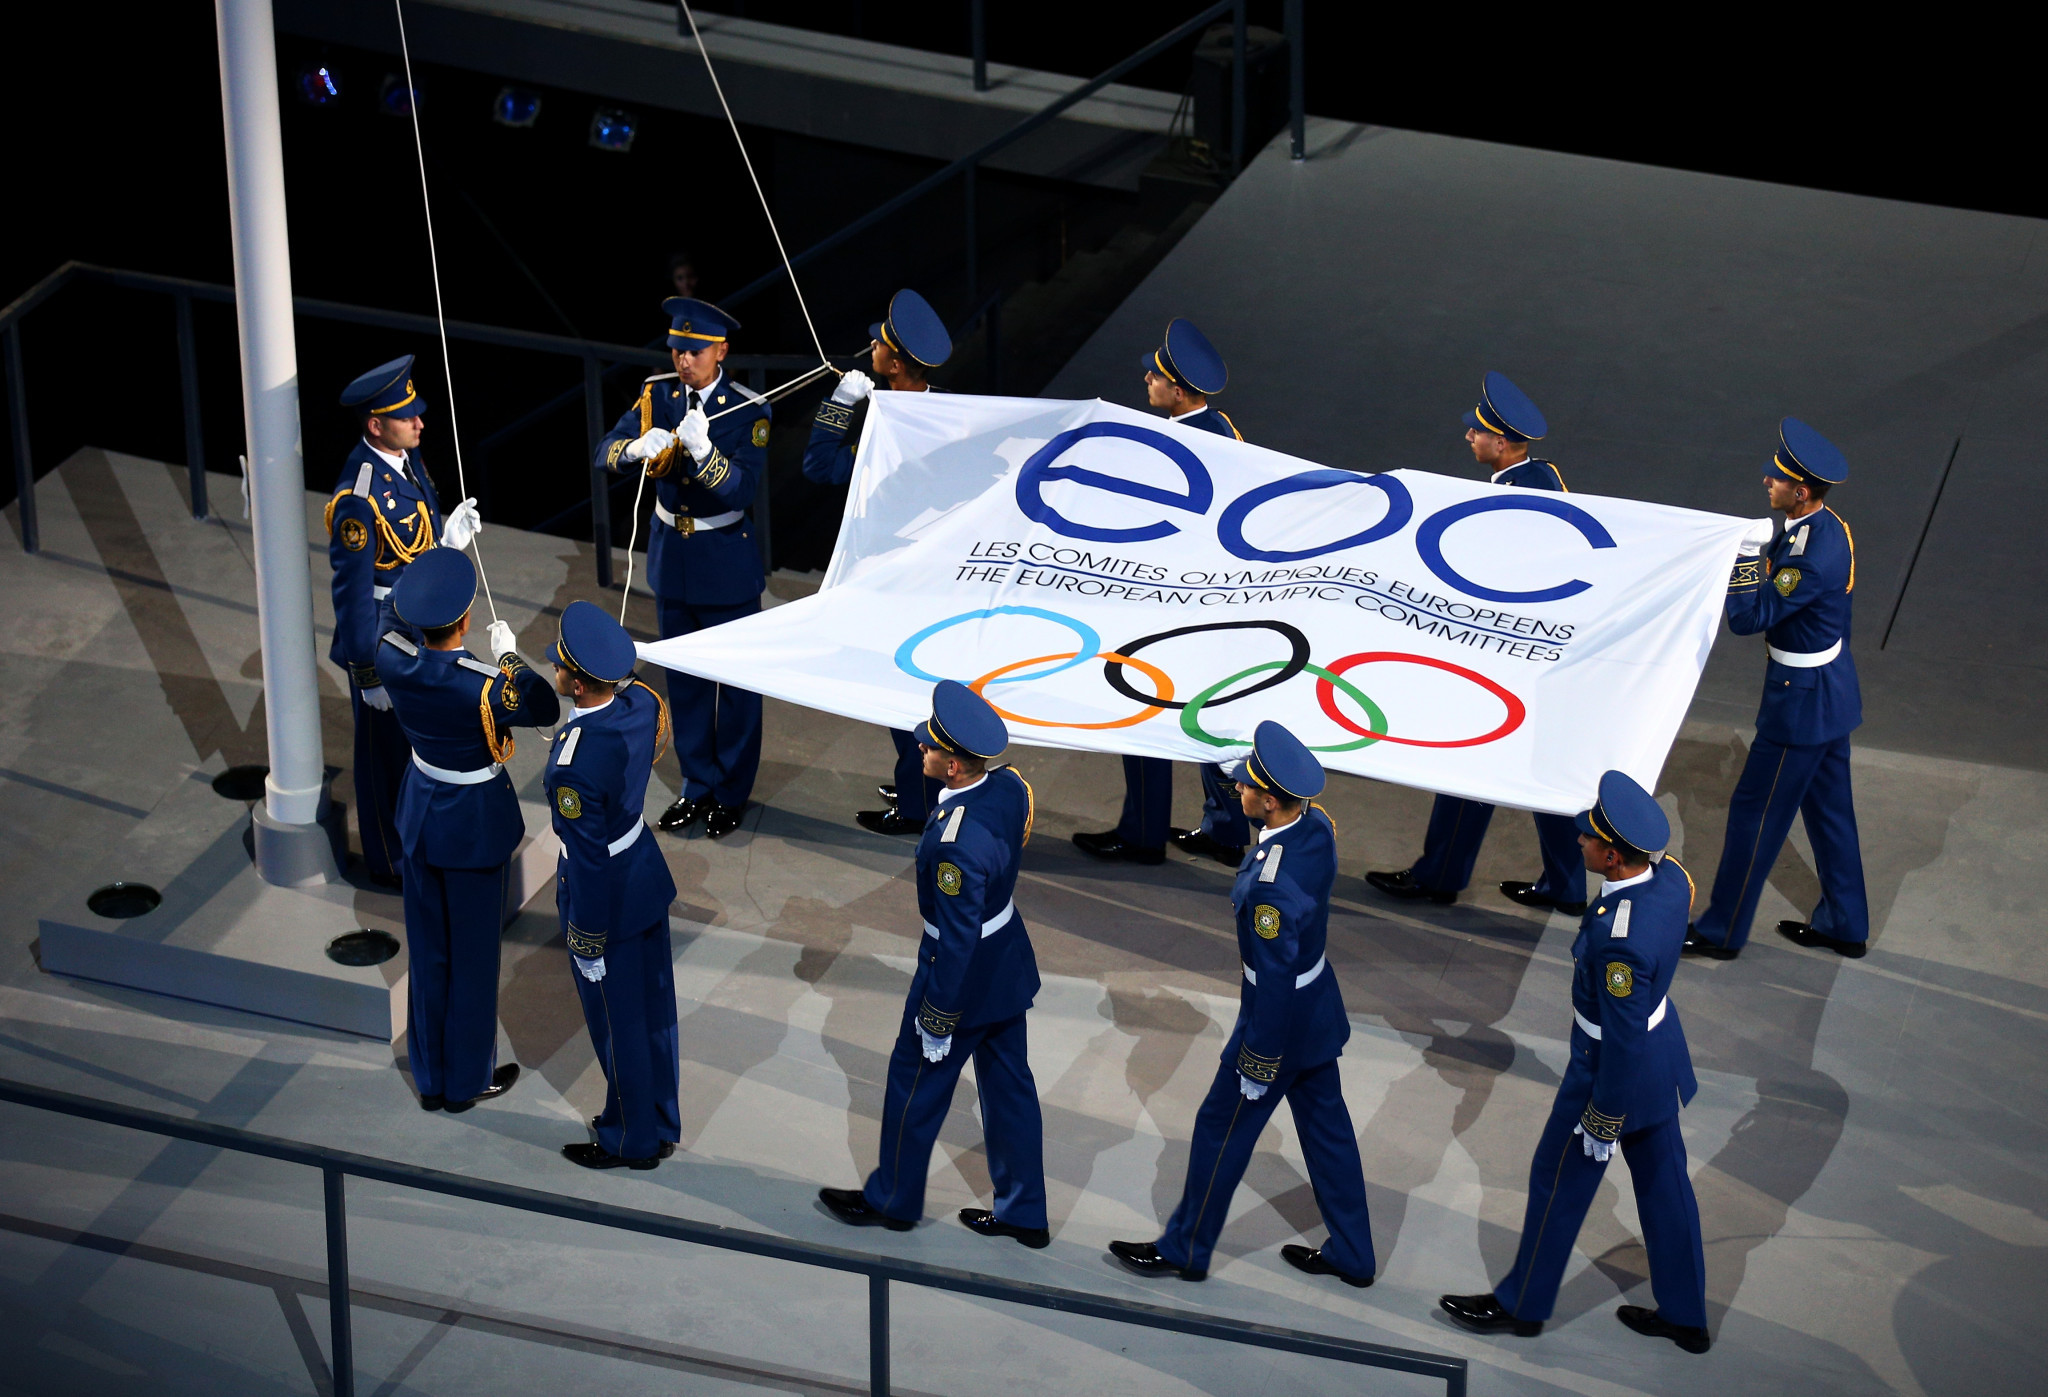 EOC opens candidature procedure for October Athletes' Commission election